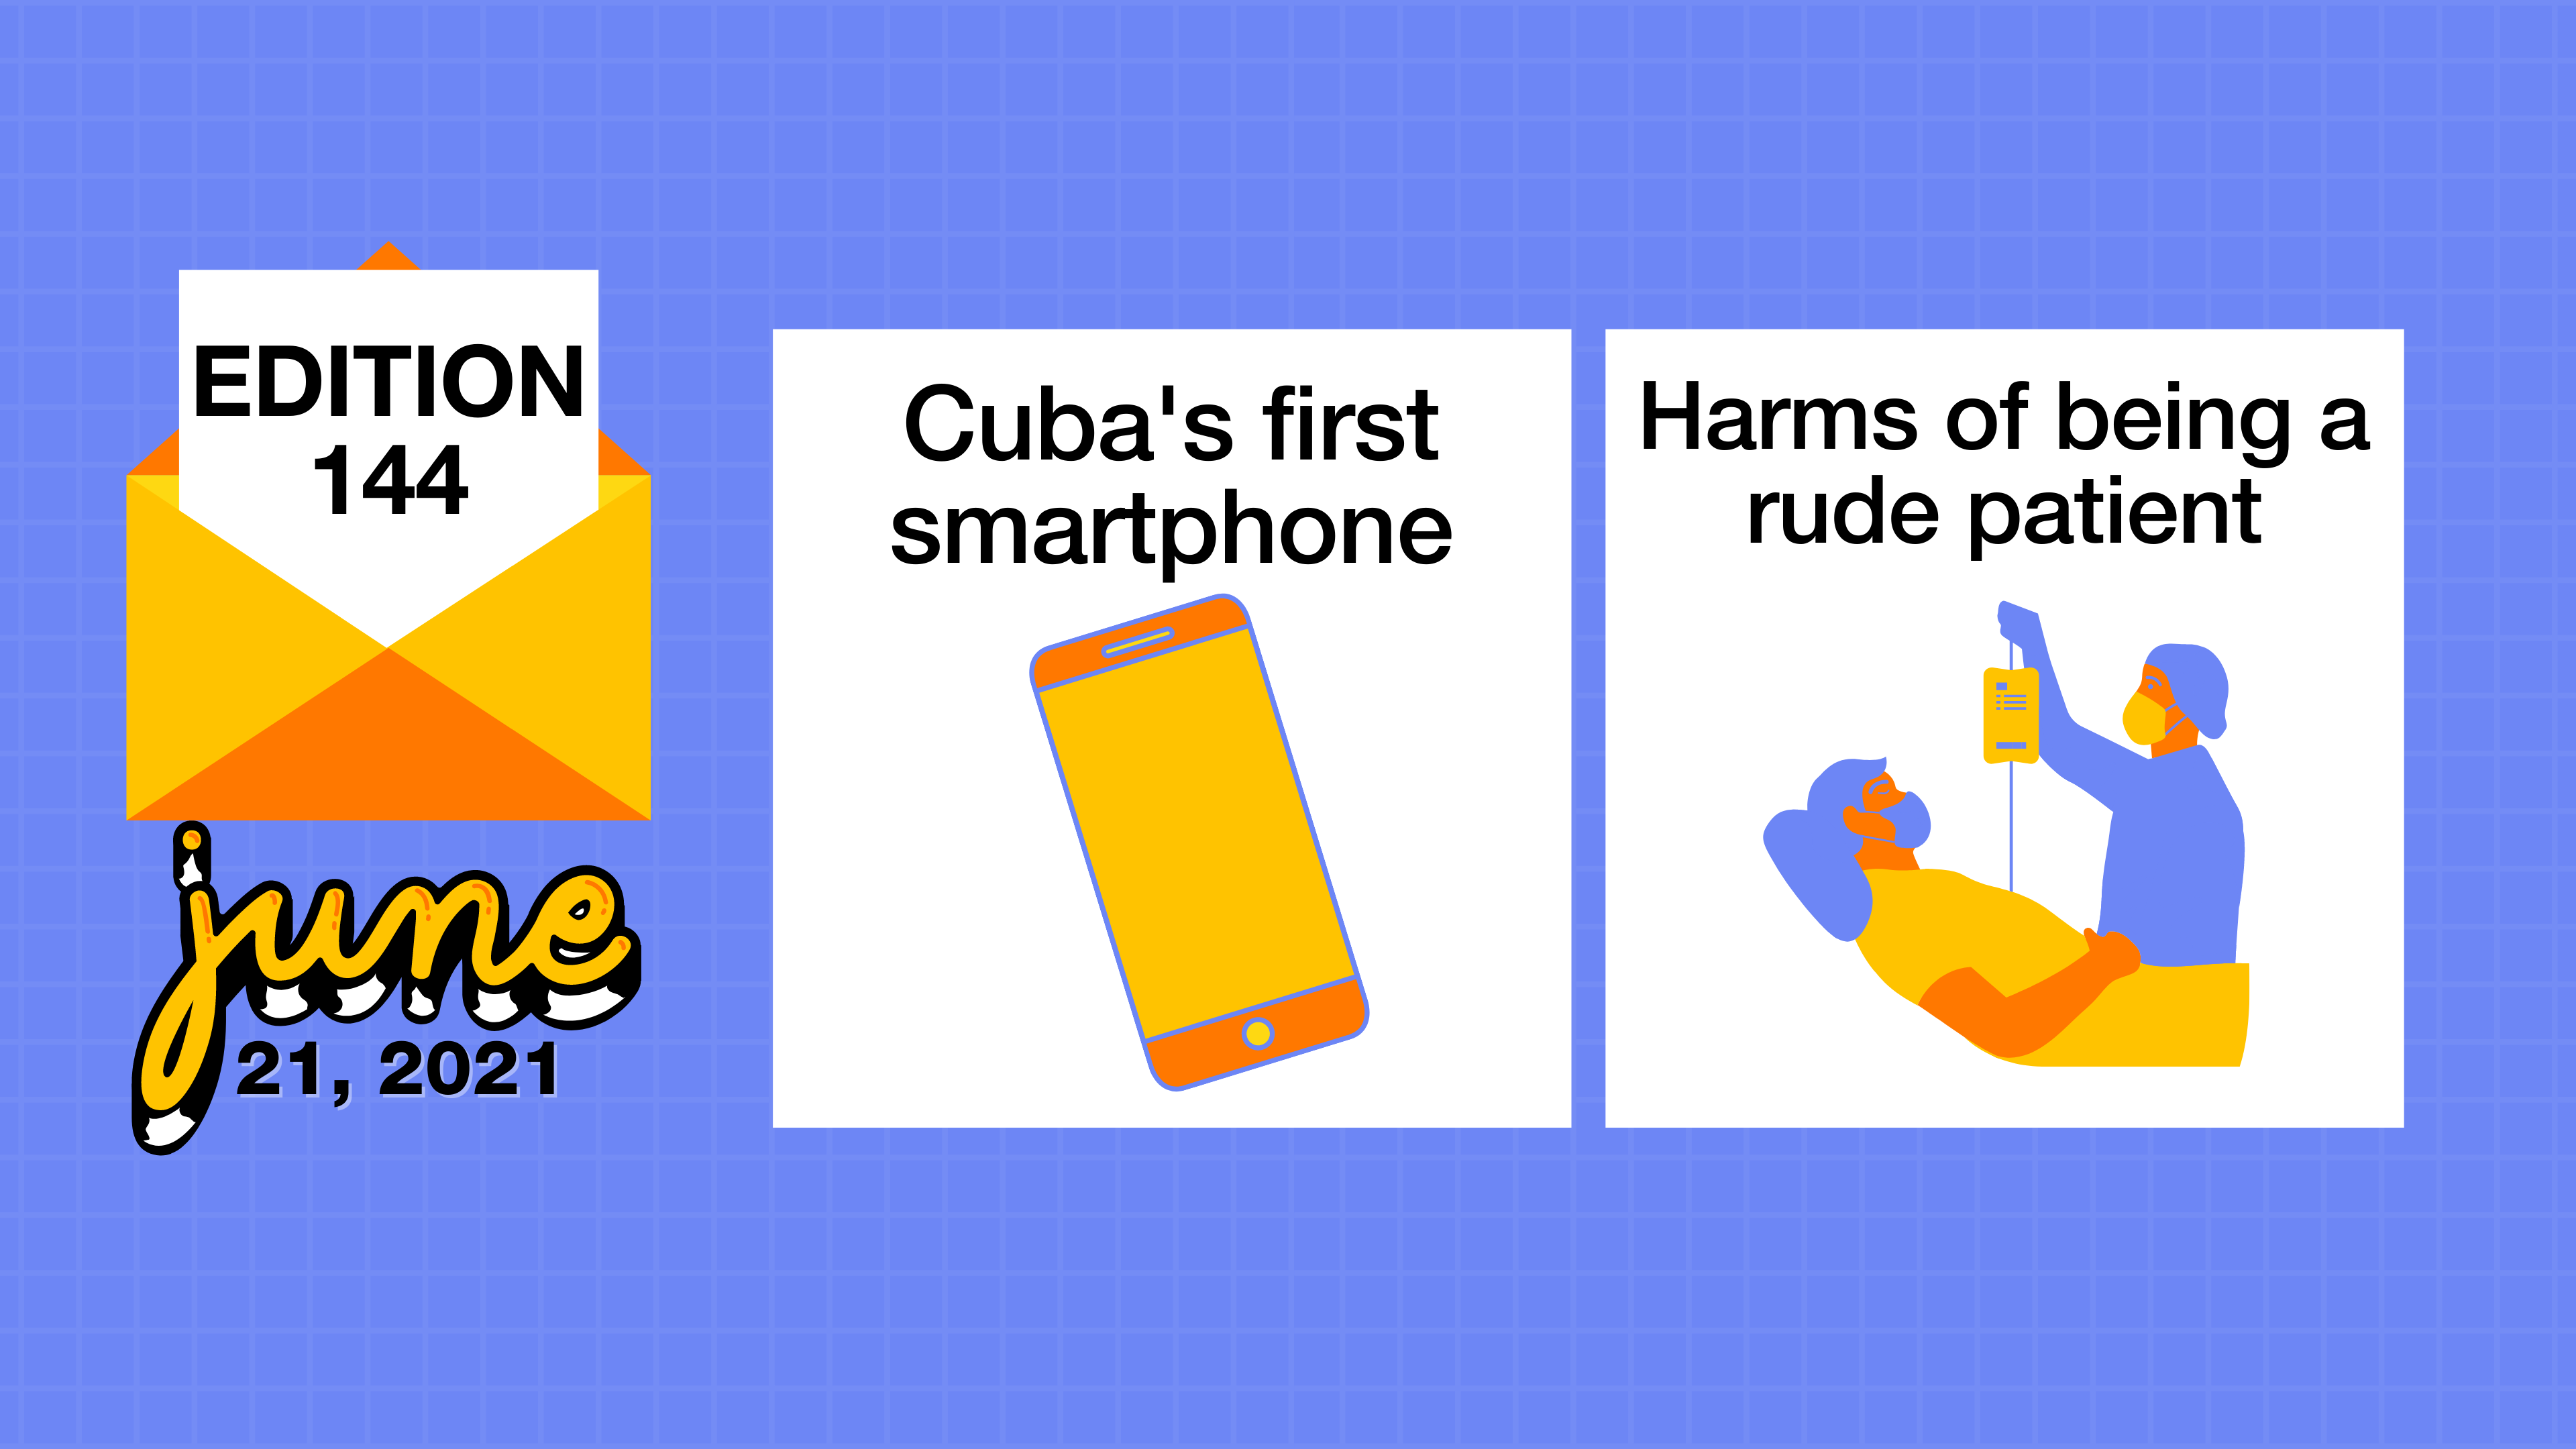 Cuba's first smartphone and the harms of being a rude patient